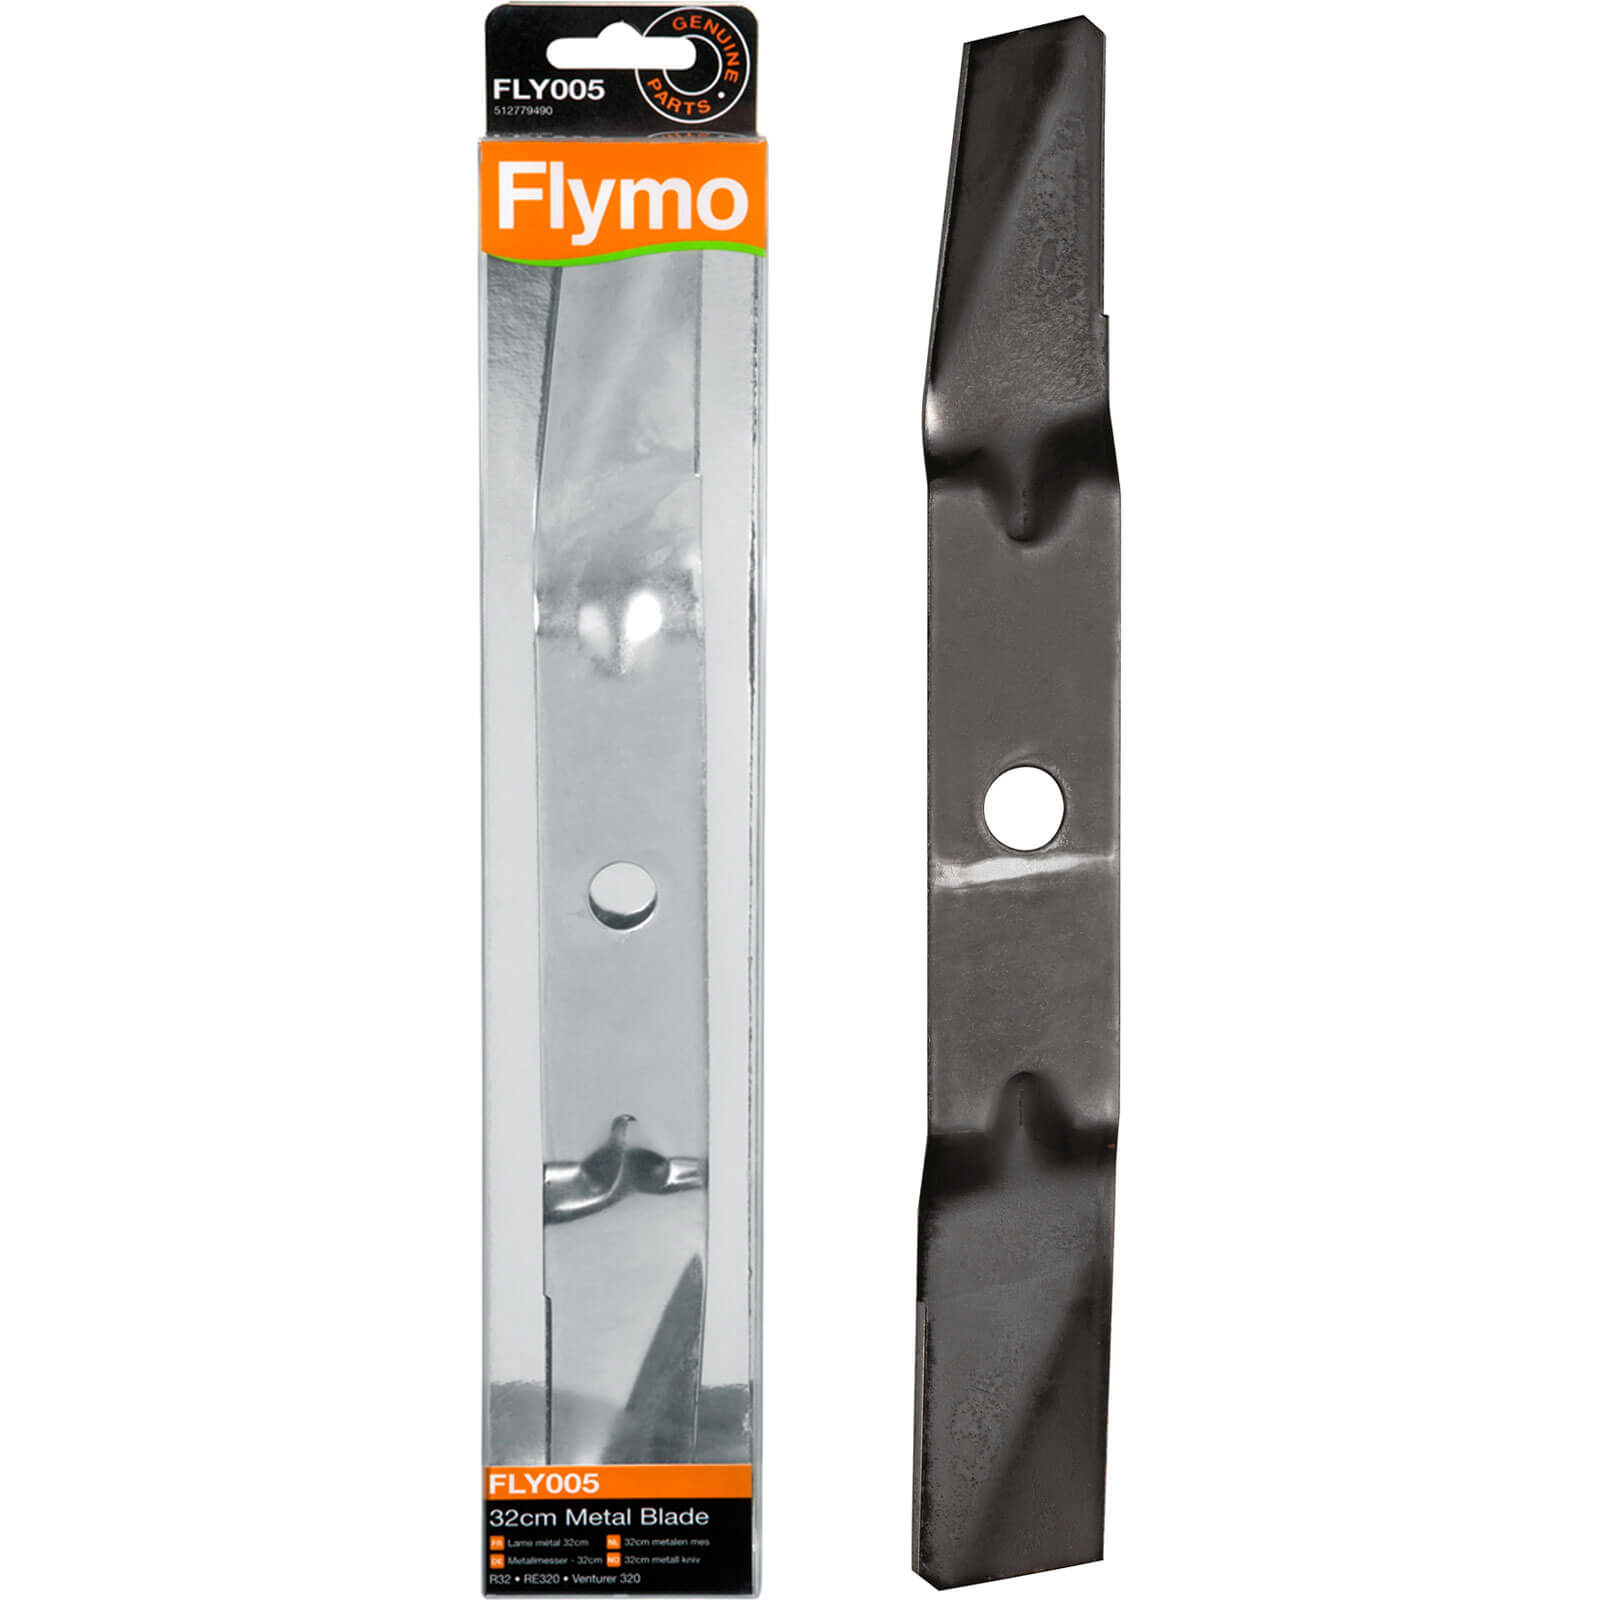 Flymo FLY005 Replacement Metal Blade 32cm for Venturer 320, RE320, RE32 & R32 Lawnmowers